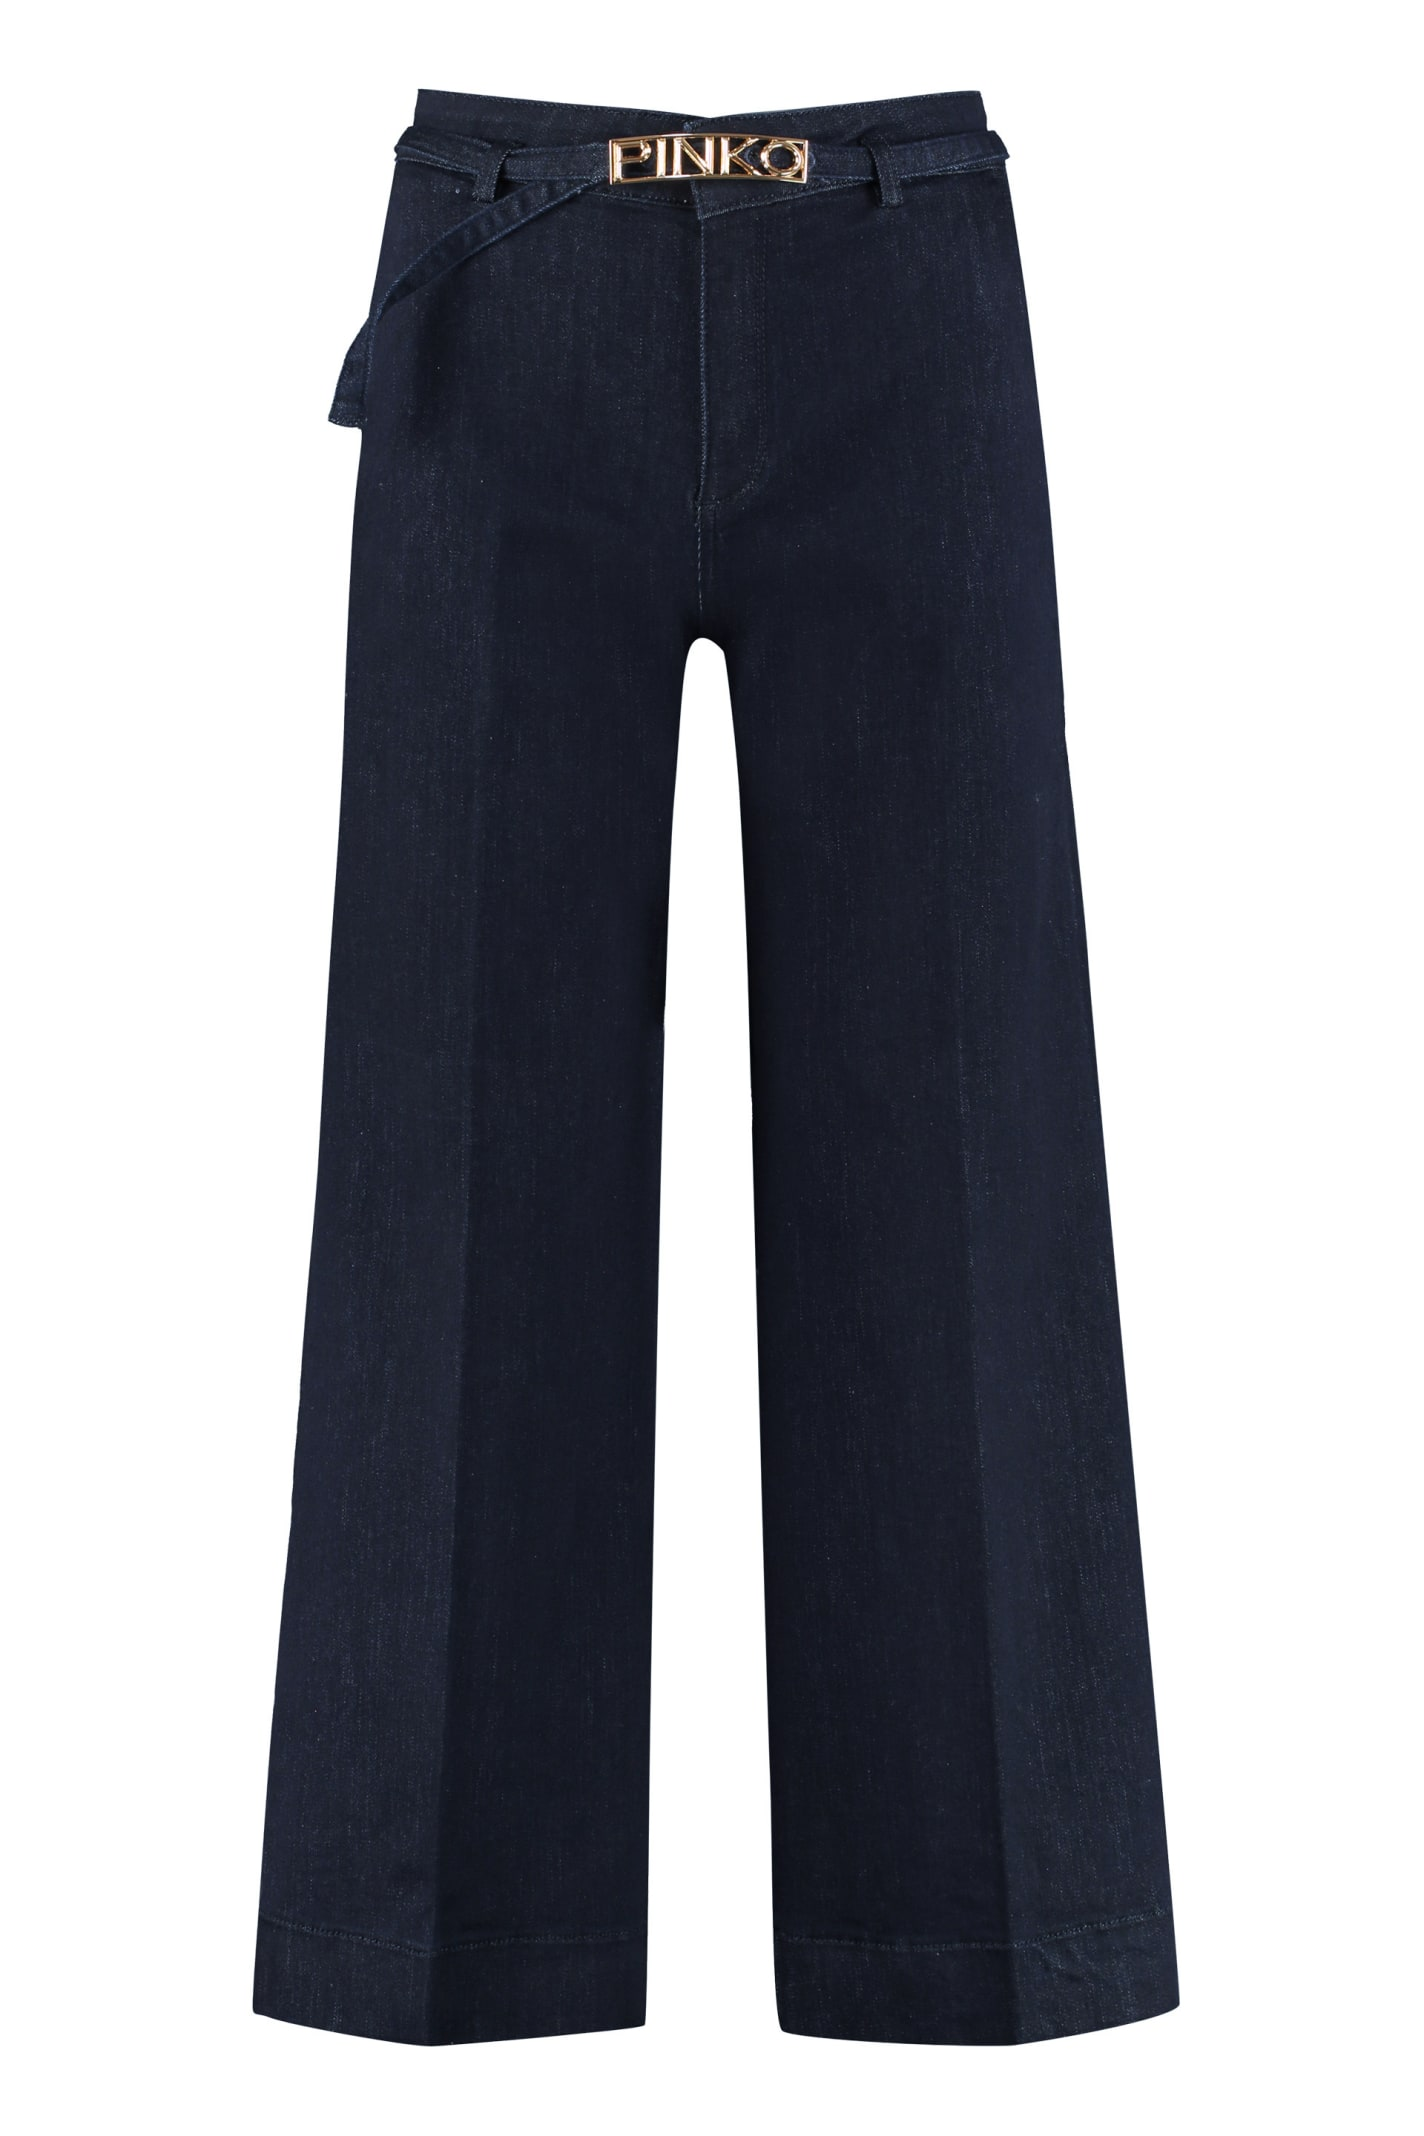 Pinko Peggy Wide Leg Jeans